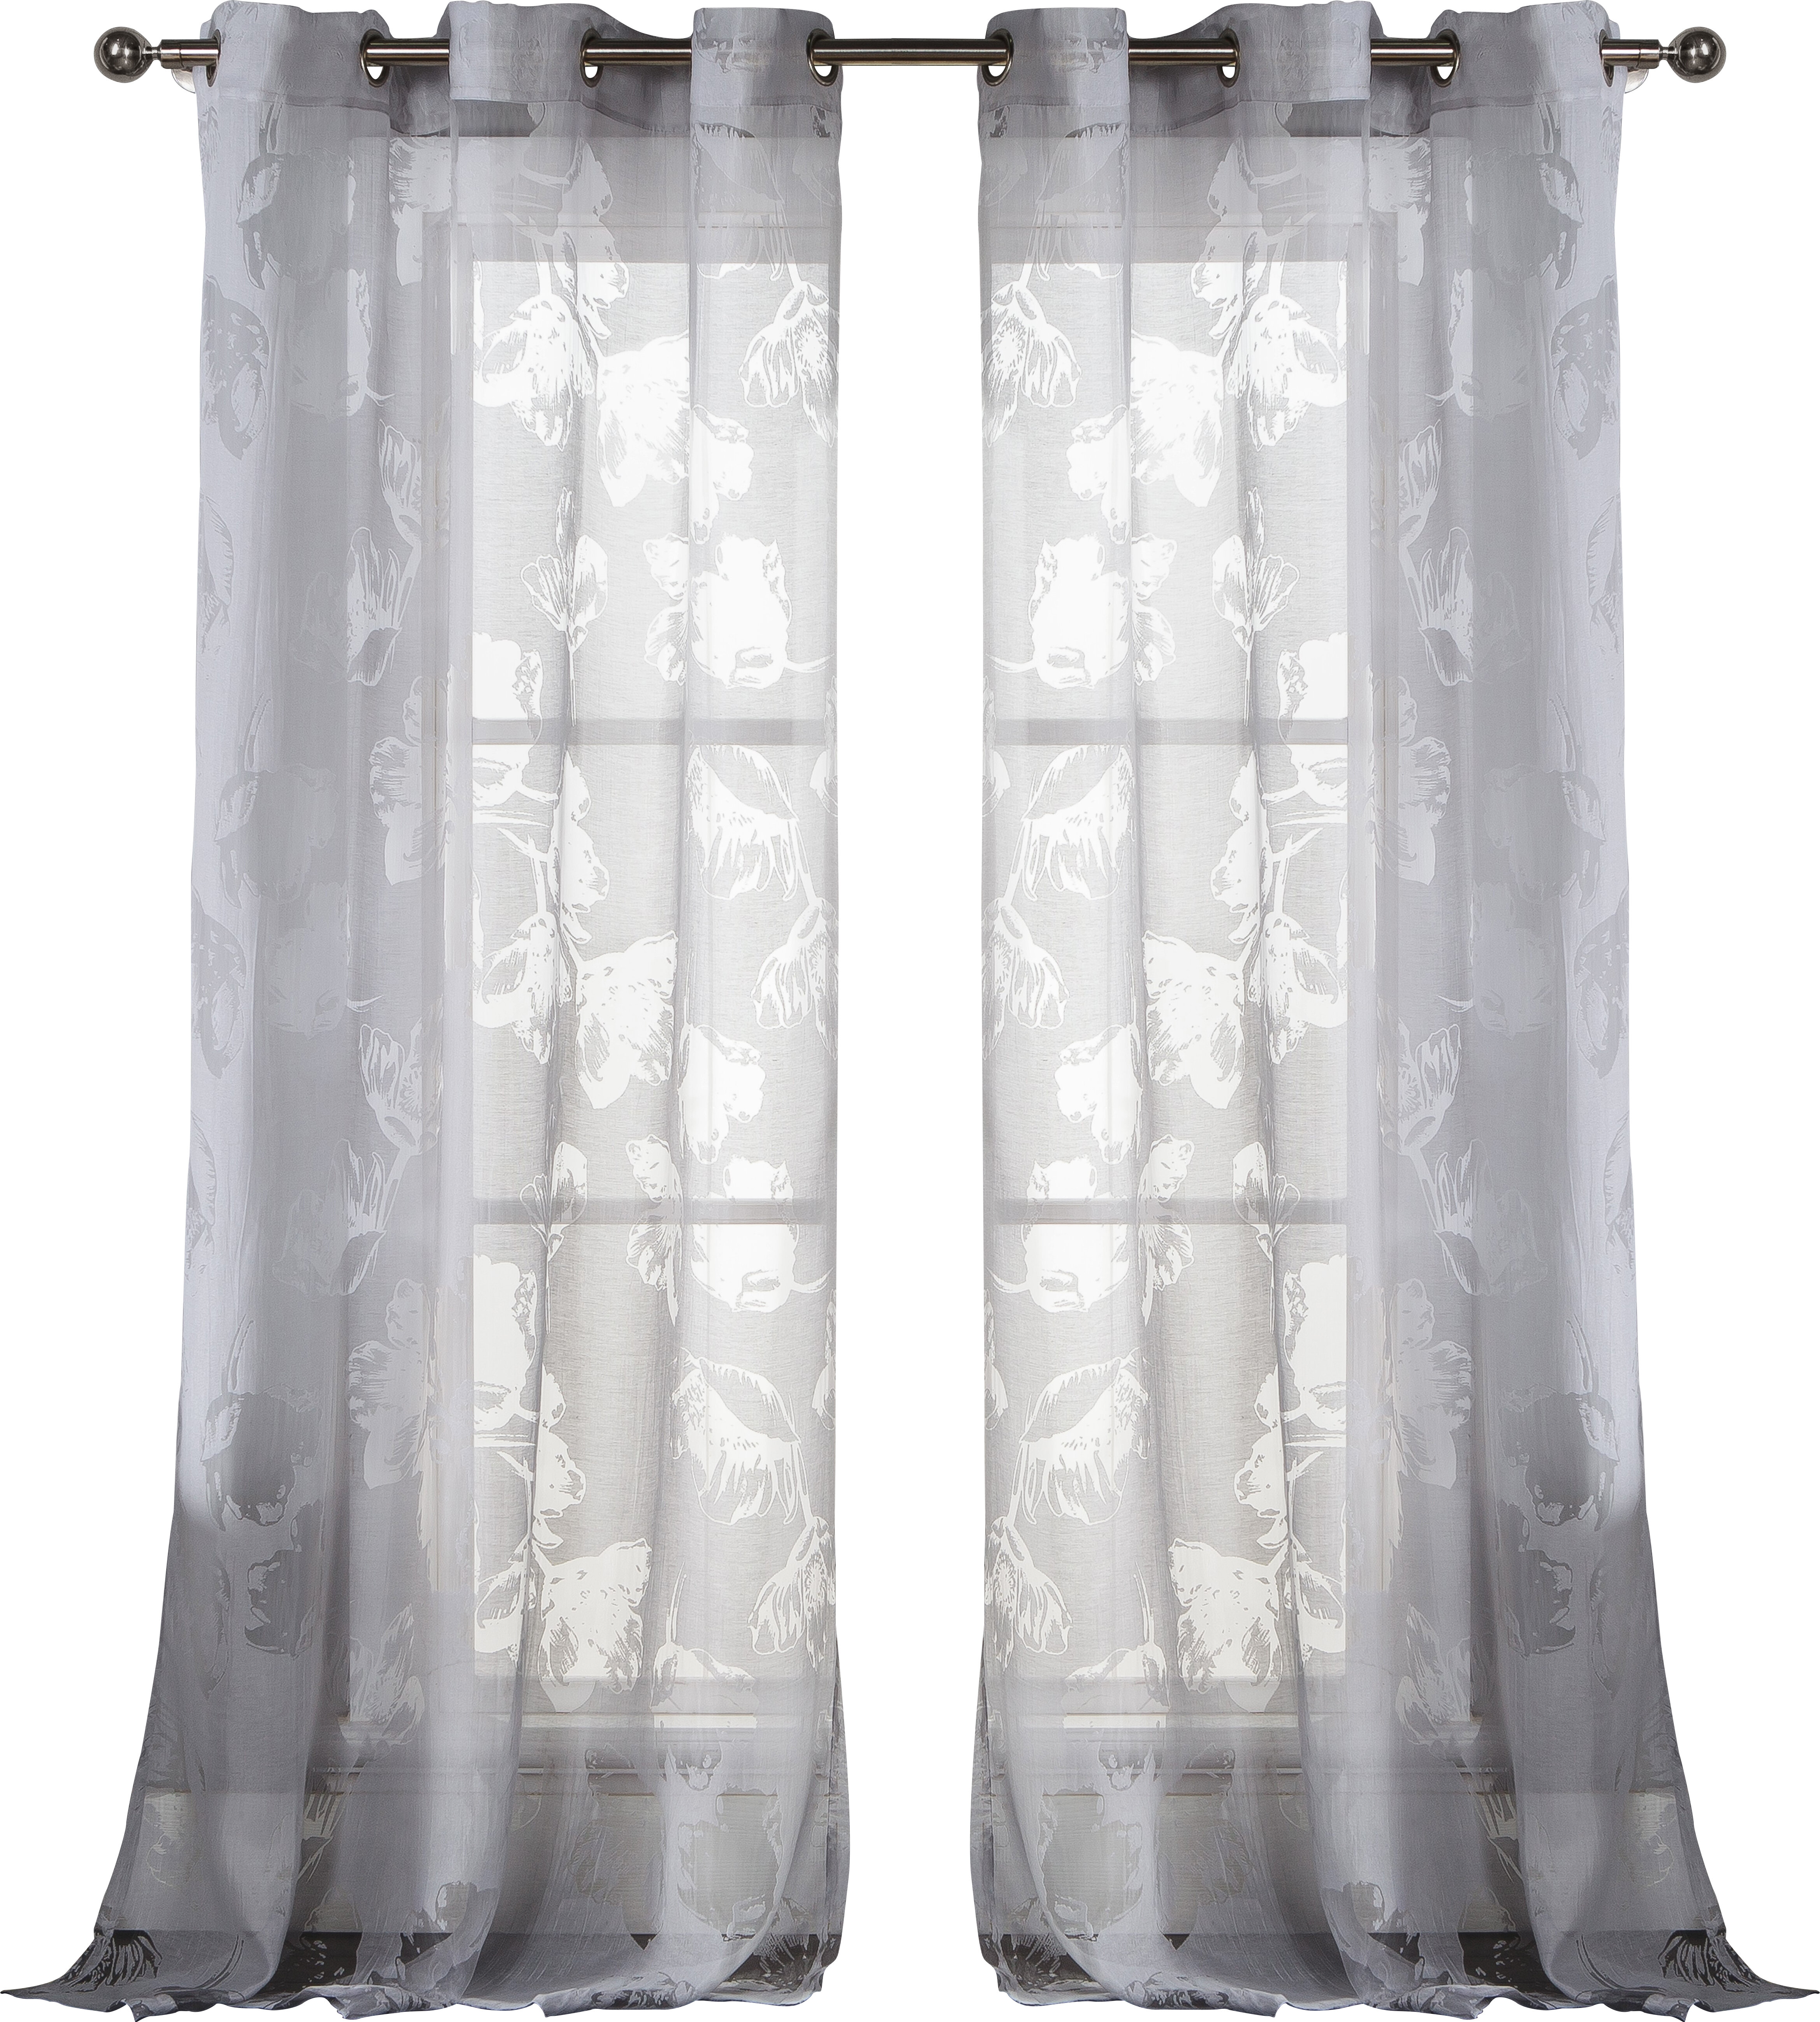 Curtains, Drapes & Valances Sporting Charcoal Grey Crushed Velvet Elegant Luxury Modern Duvet Cover Set Or Curtains To Reduce Body Weight And Prolong Life Bedding